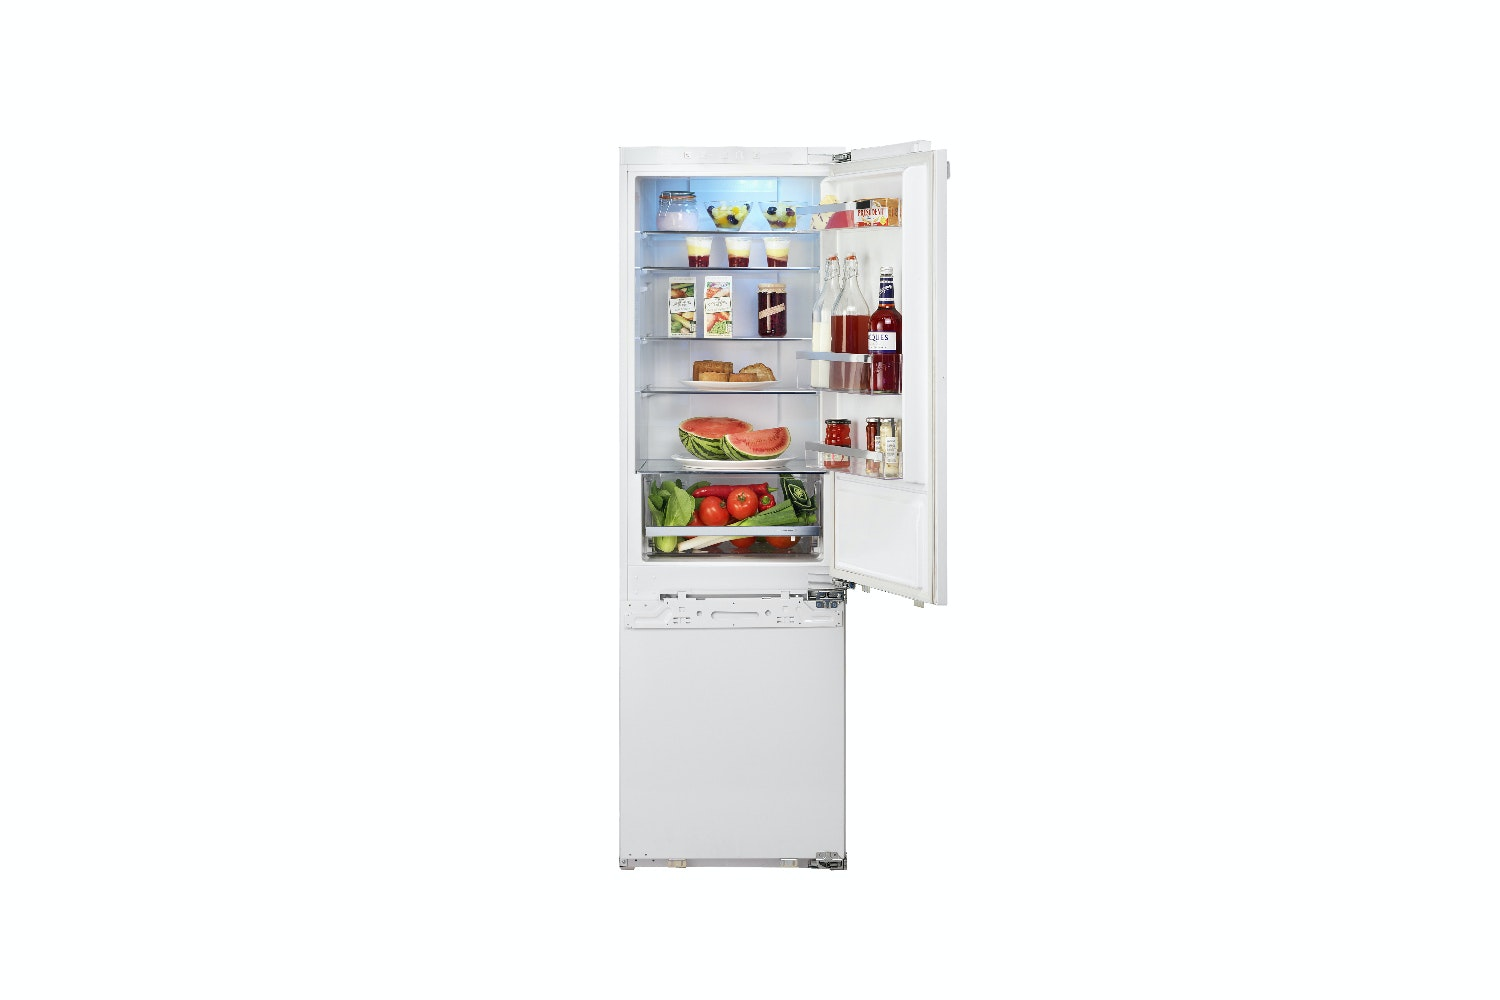 Rangemaster Buit-In Fridge Freezer | RFXF7030FI/AP